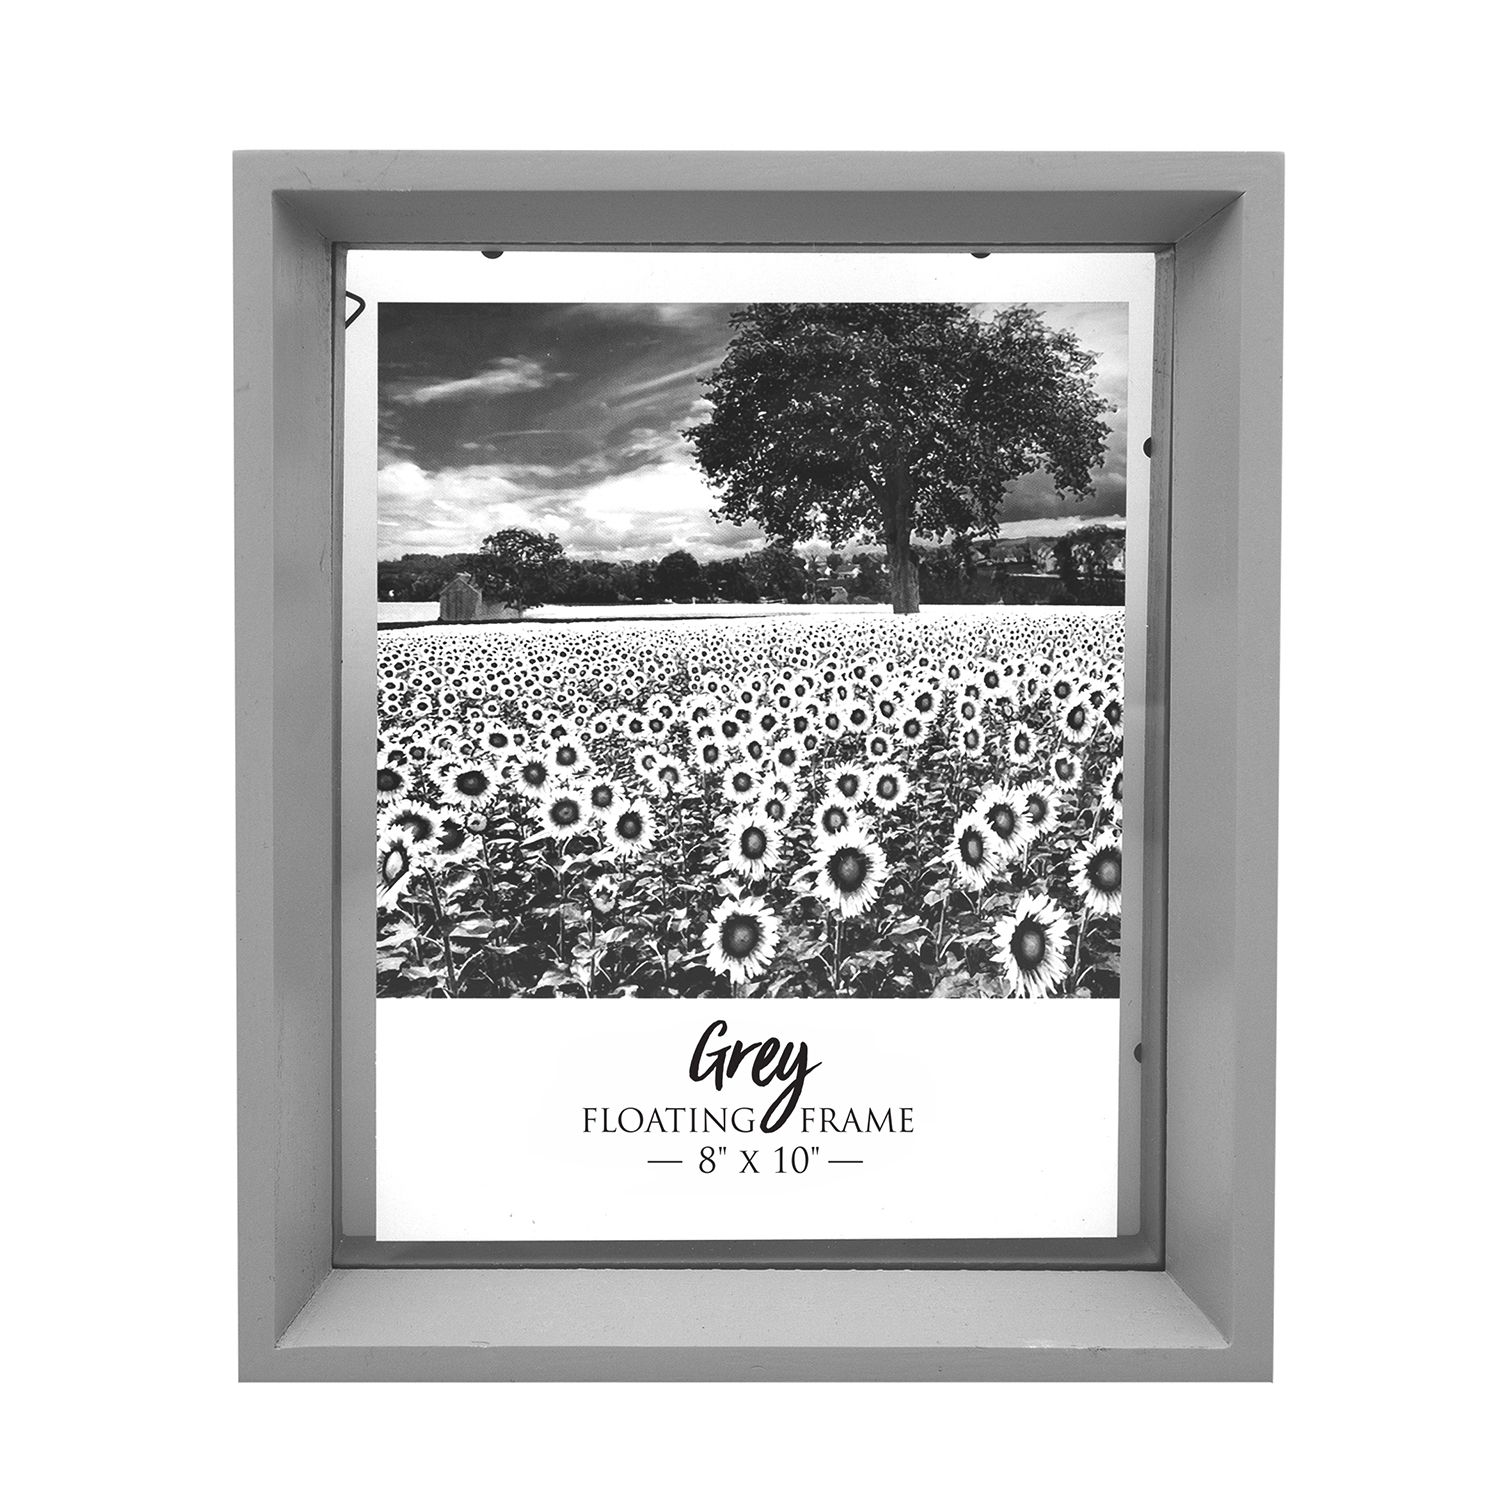 "Floating Matt Frame 8"" x 10"" - Grey"